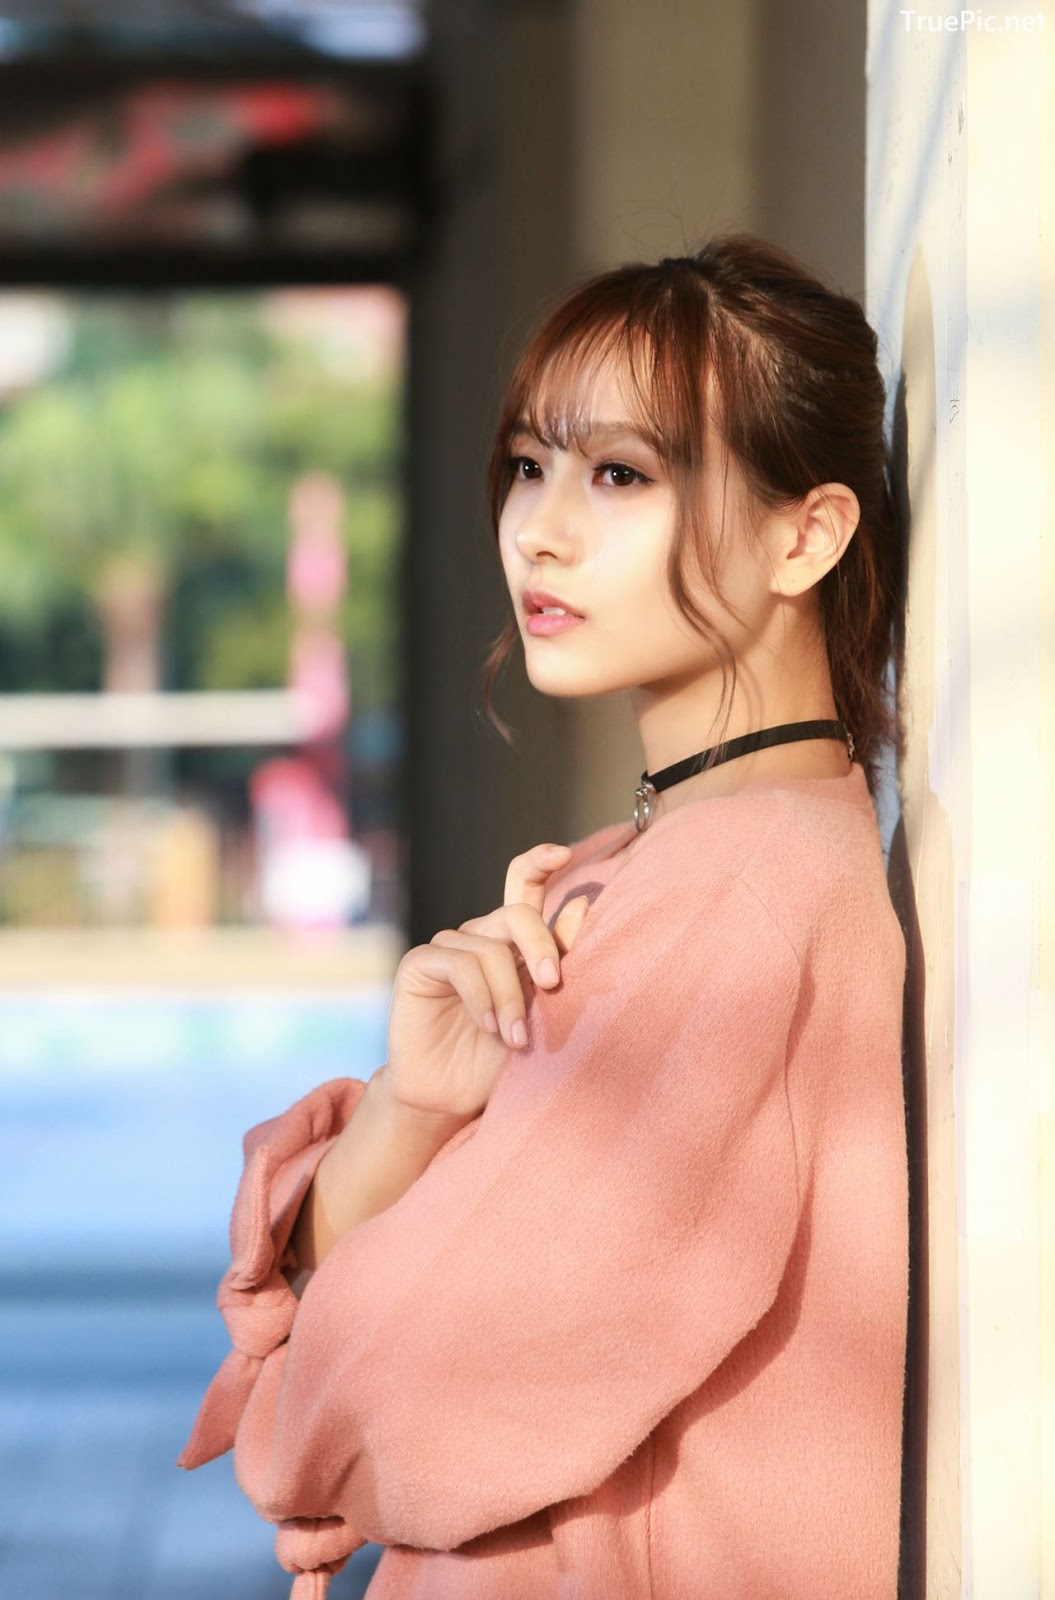 Image-Taiwanese-Model-郭思敏-Pure-And-Gorgeous-Girl-In-Pink-Sweater-Dress-TruePic.net- Picture-3